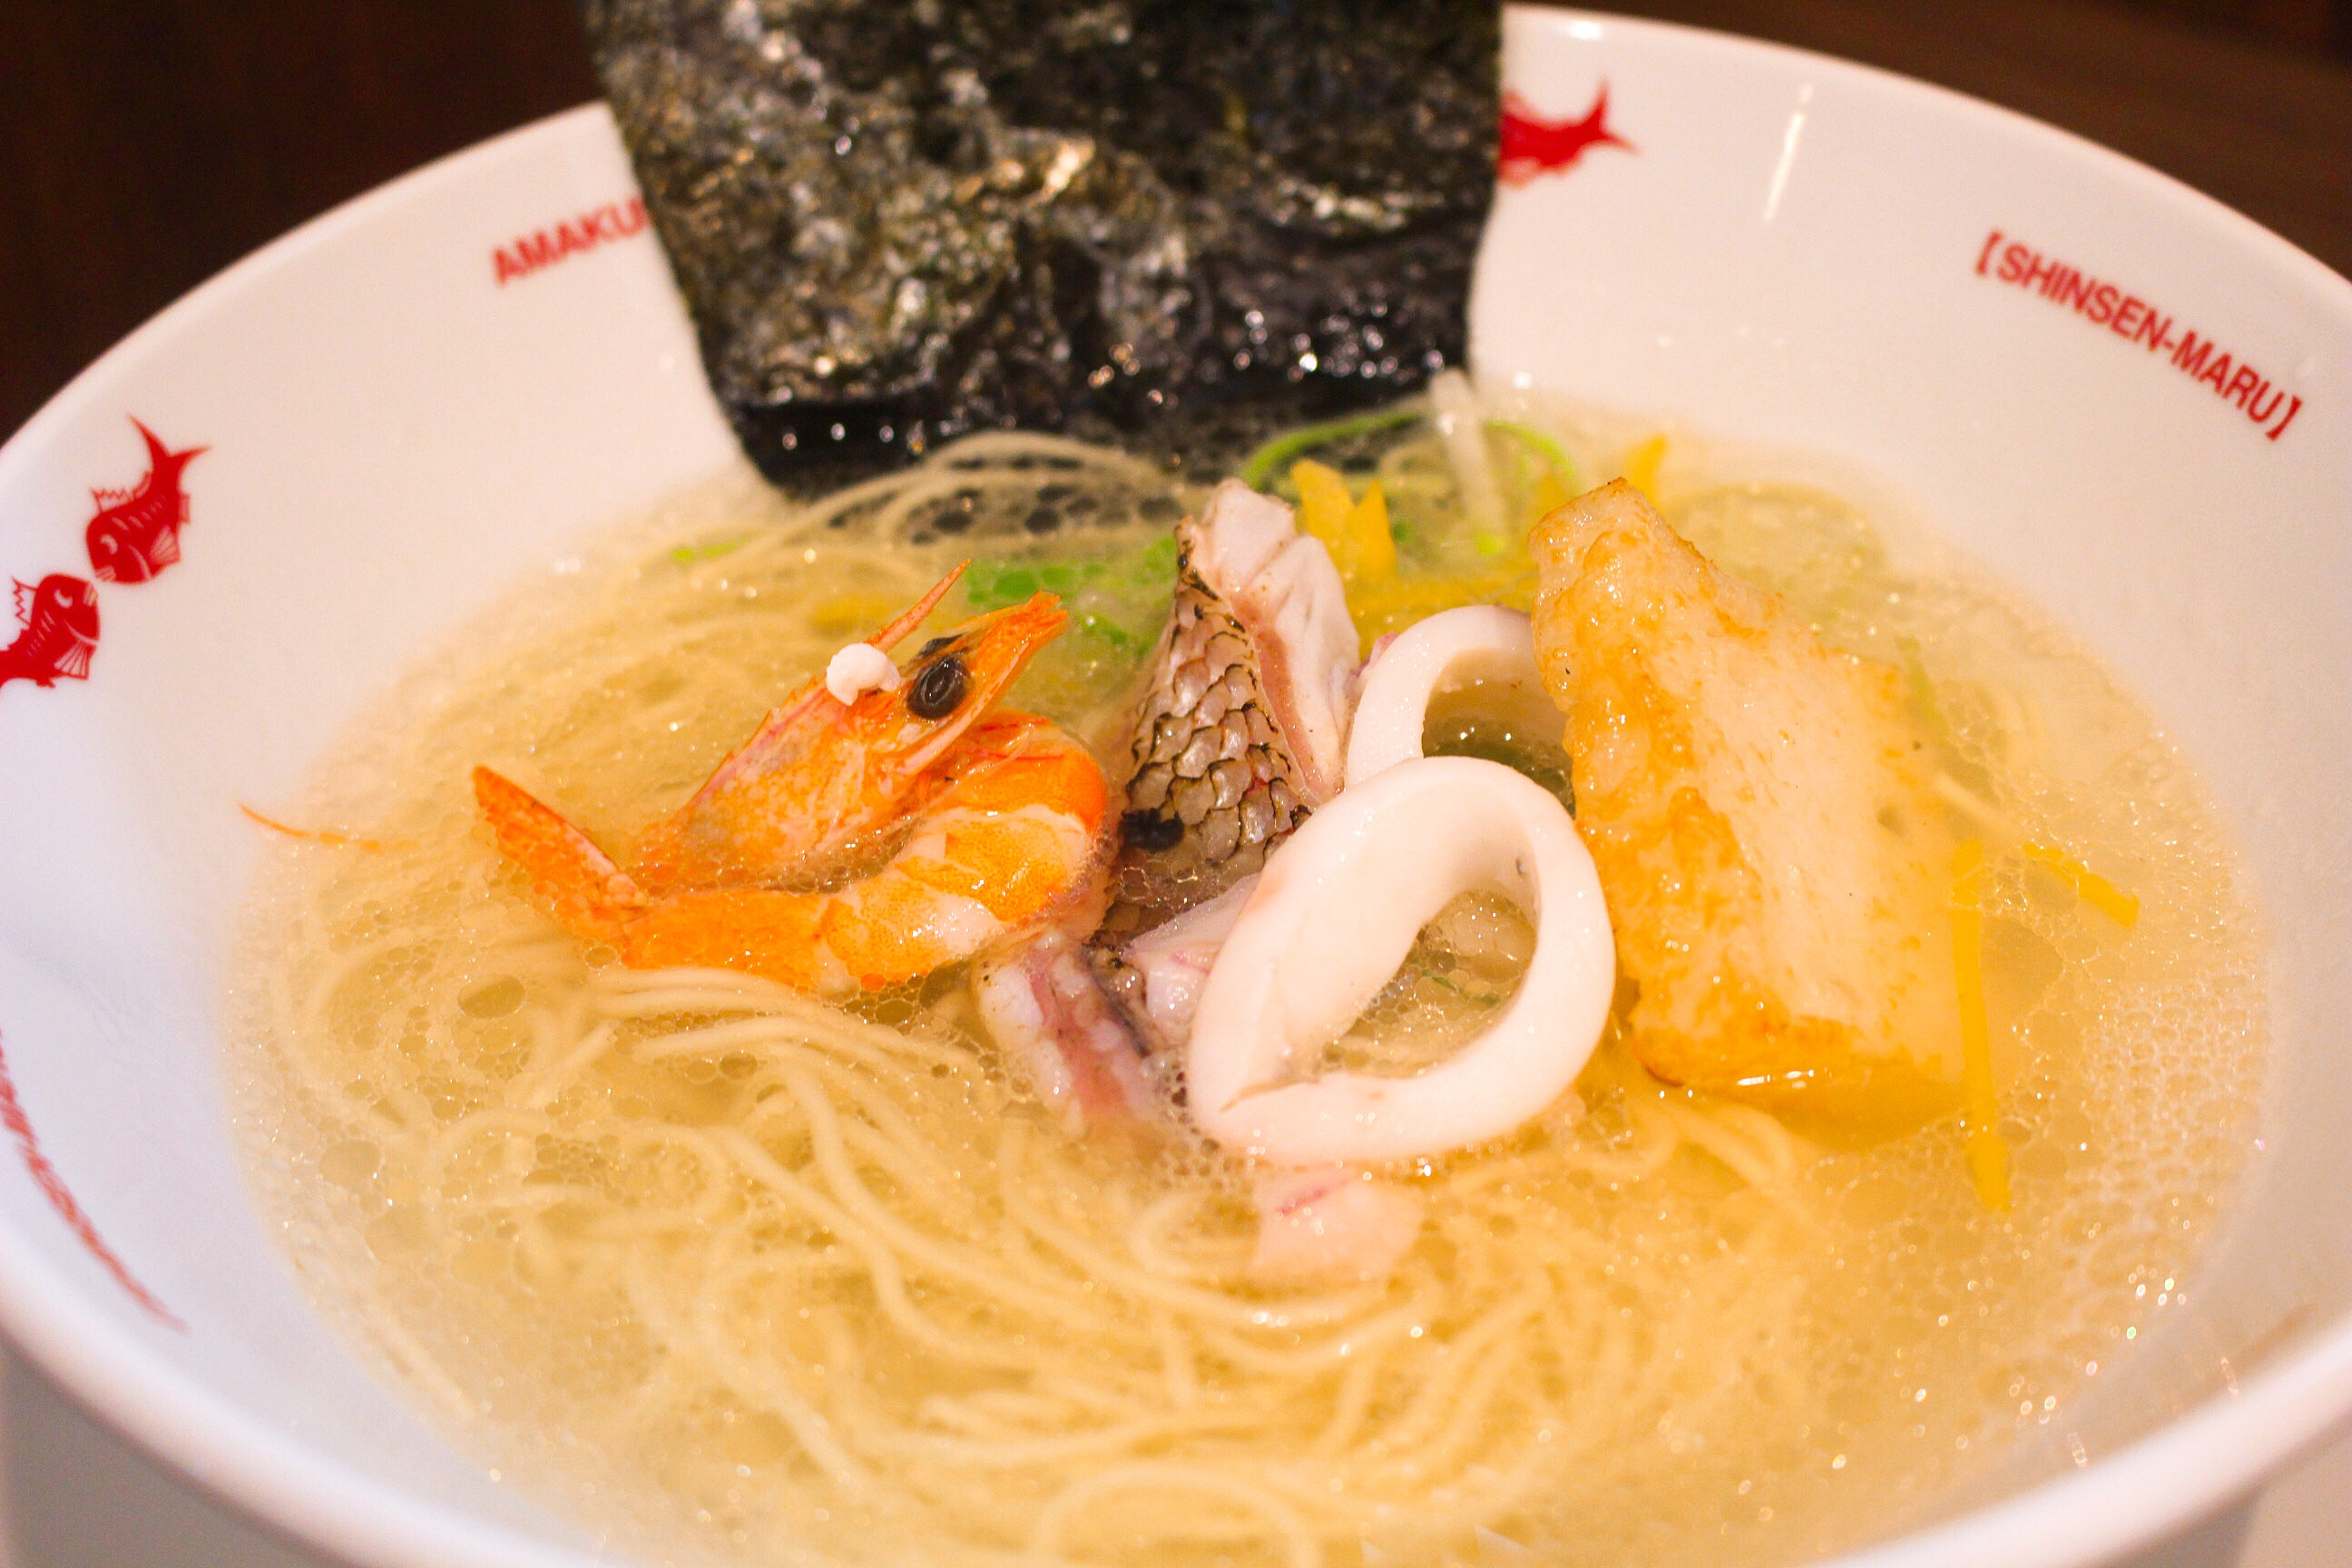 【新鮮丸ラーメン】熊本!戸島、みやび鯛だし塩ラーメン@メニュー